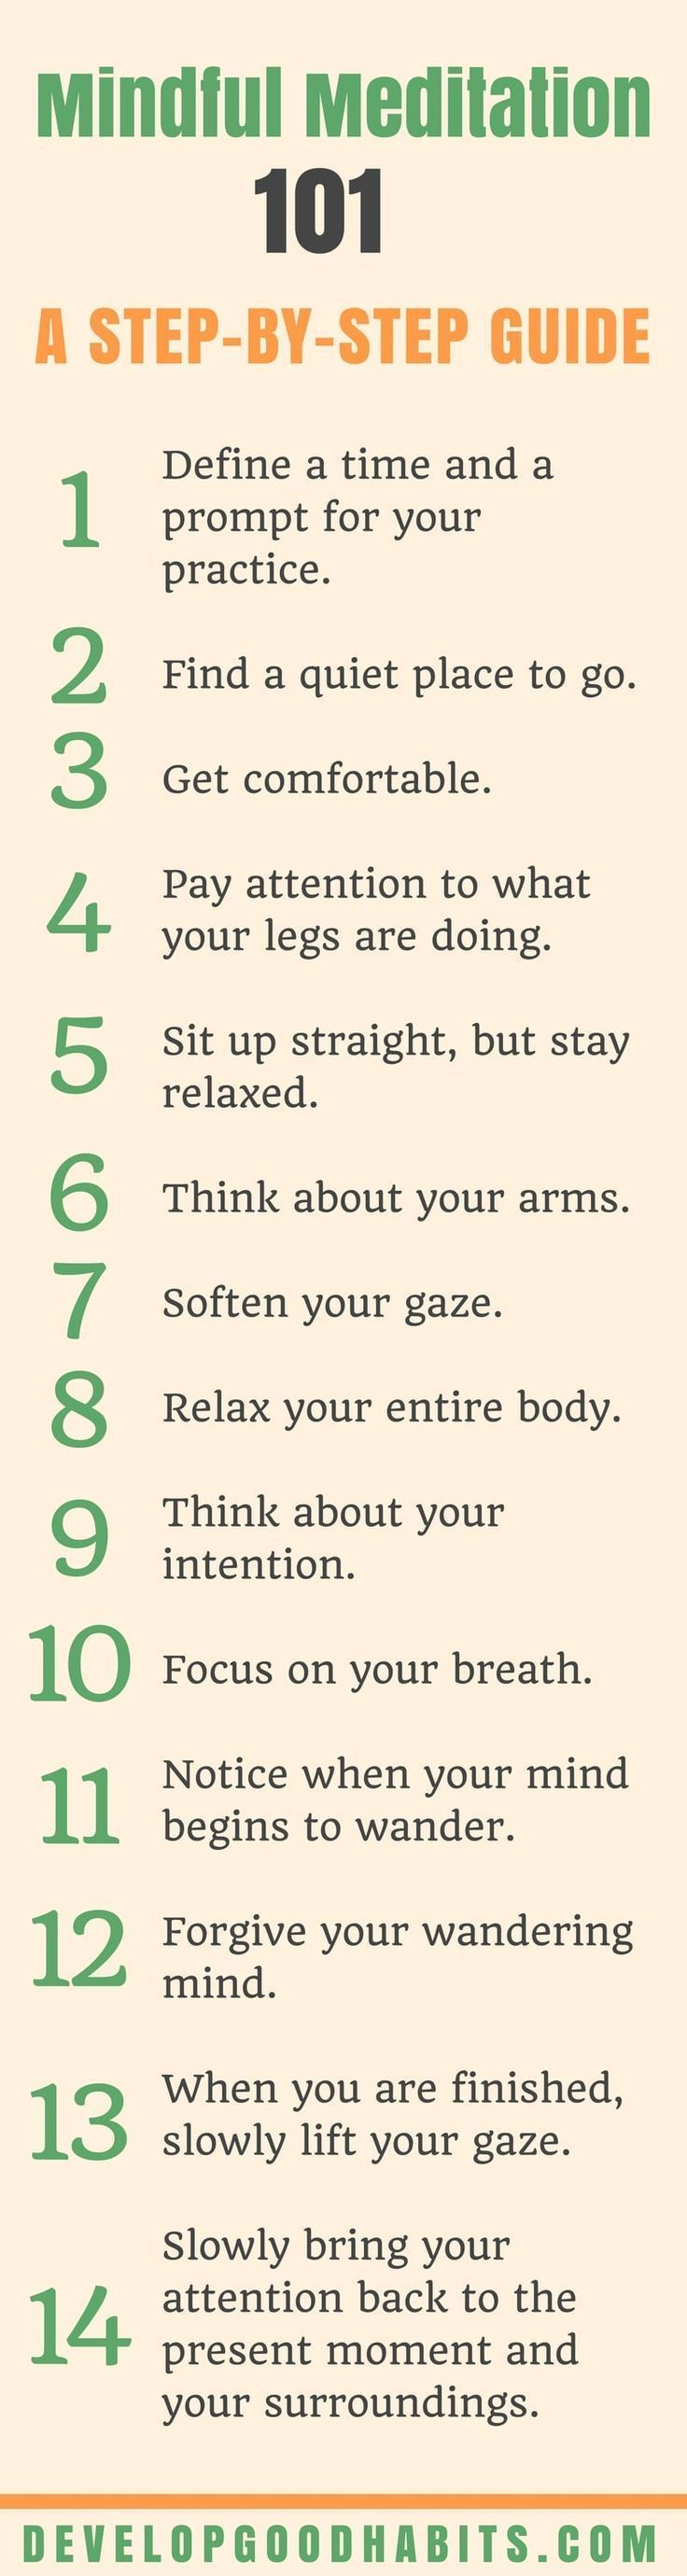 How to Practice Mindfulness (The Ultimate Guide to Being More Mindful Throughout the Day)